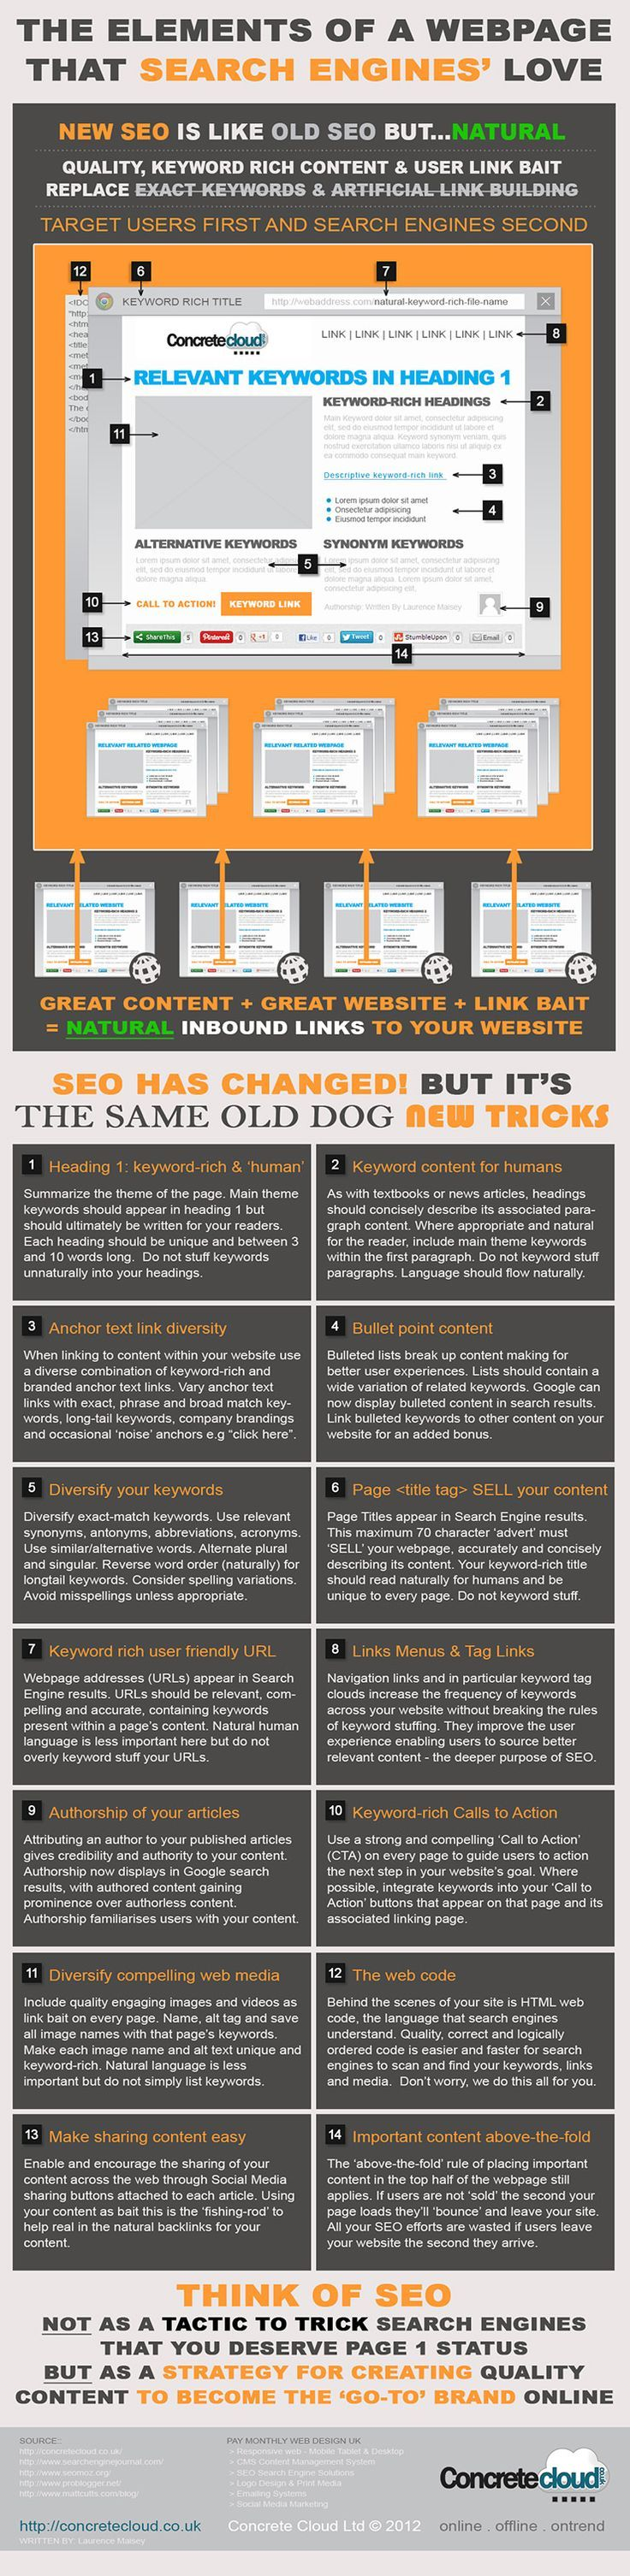 How to write website content for humans & Search Engines. Beginners Guide to Search Engine Optimization Since Google's Penguin & Panda has changed. Infographic by Concrete Cloud